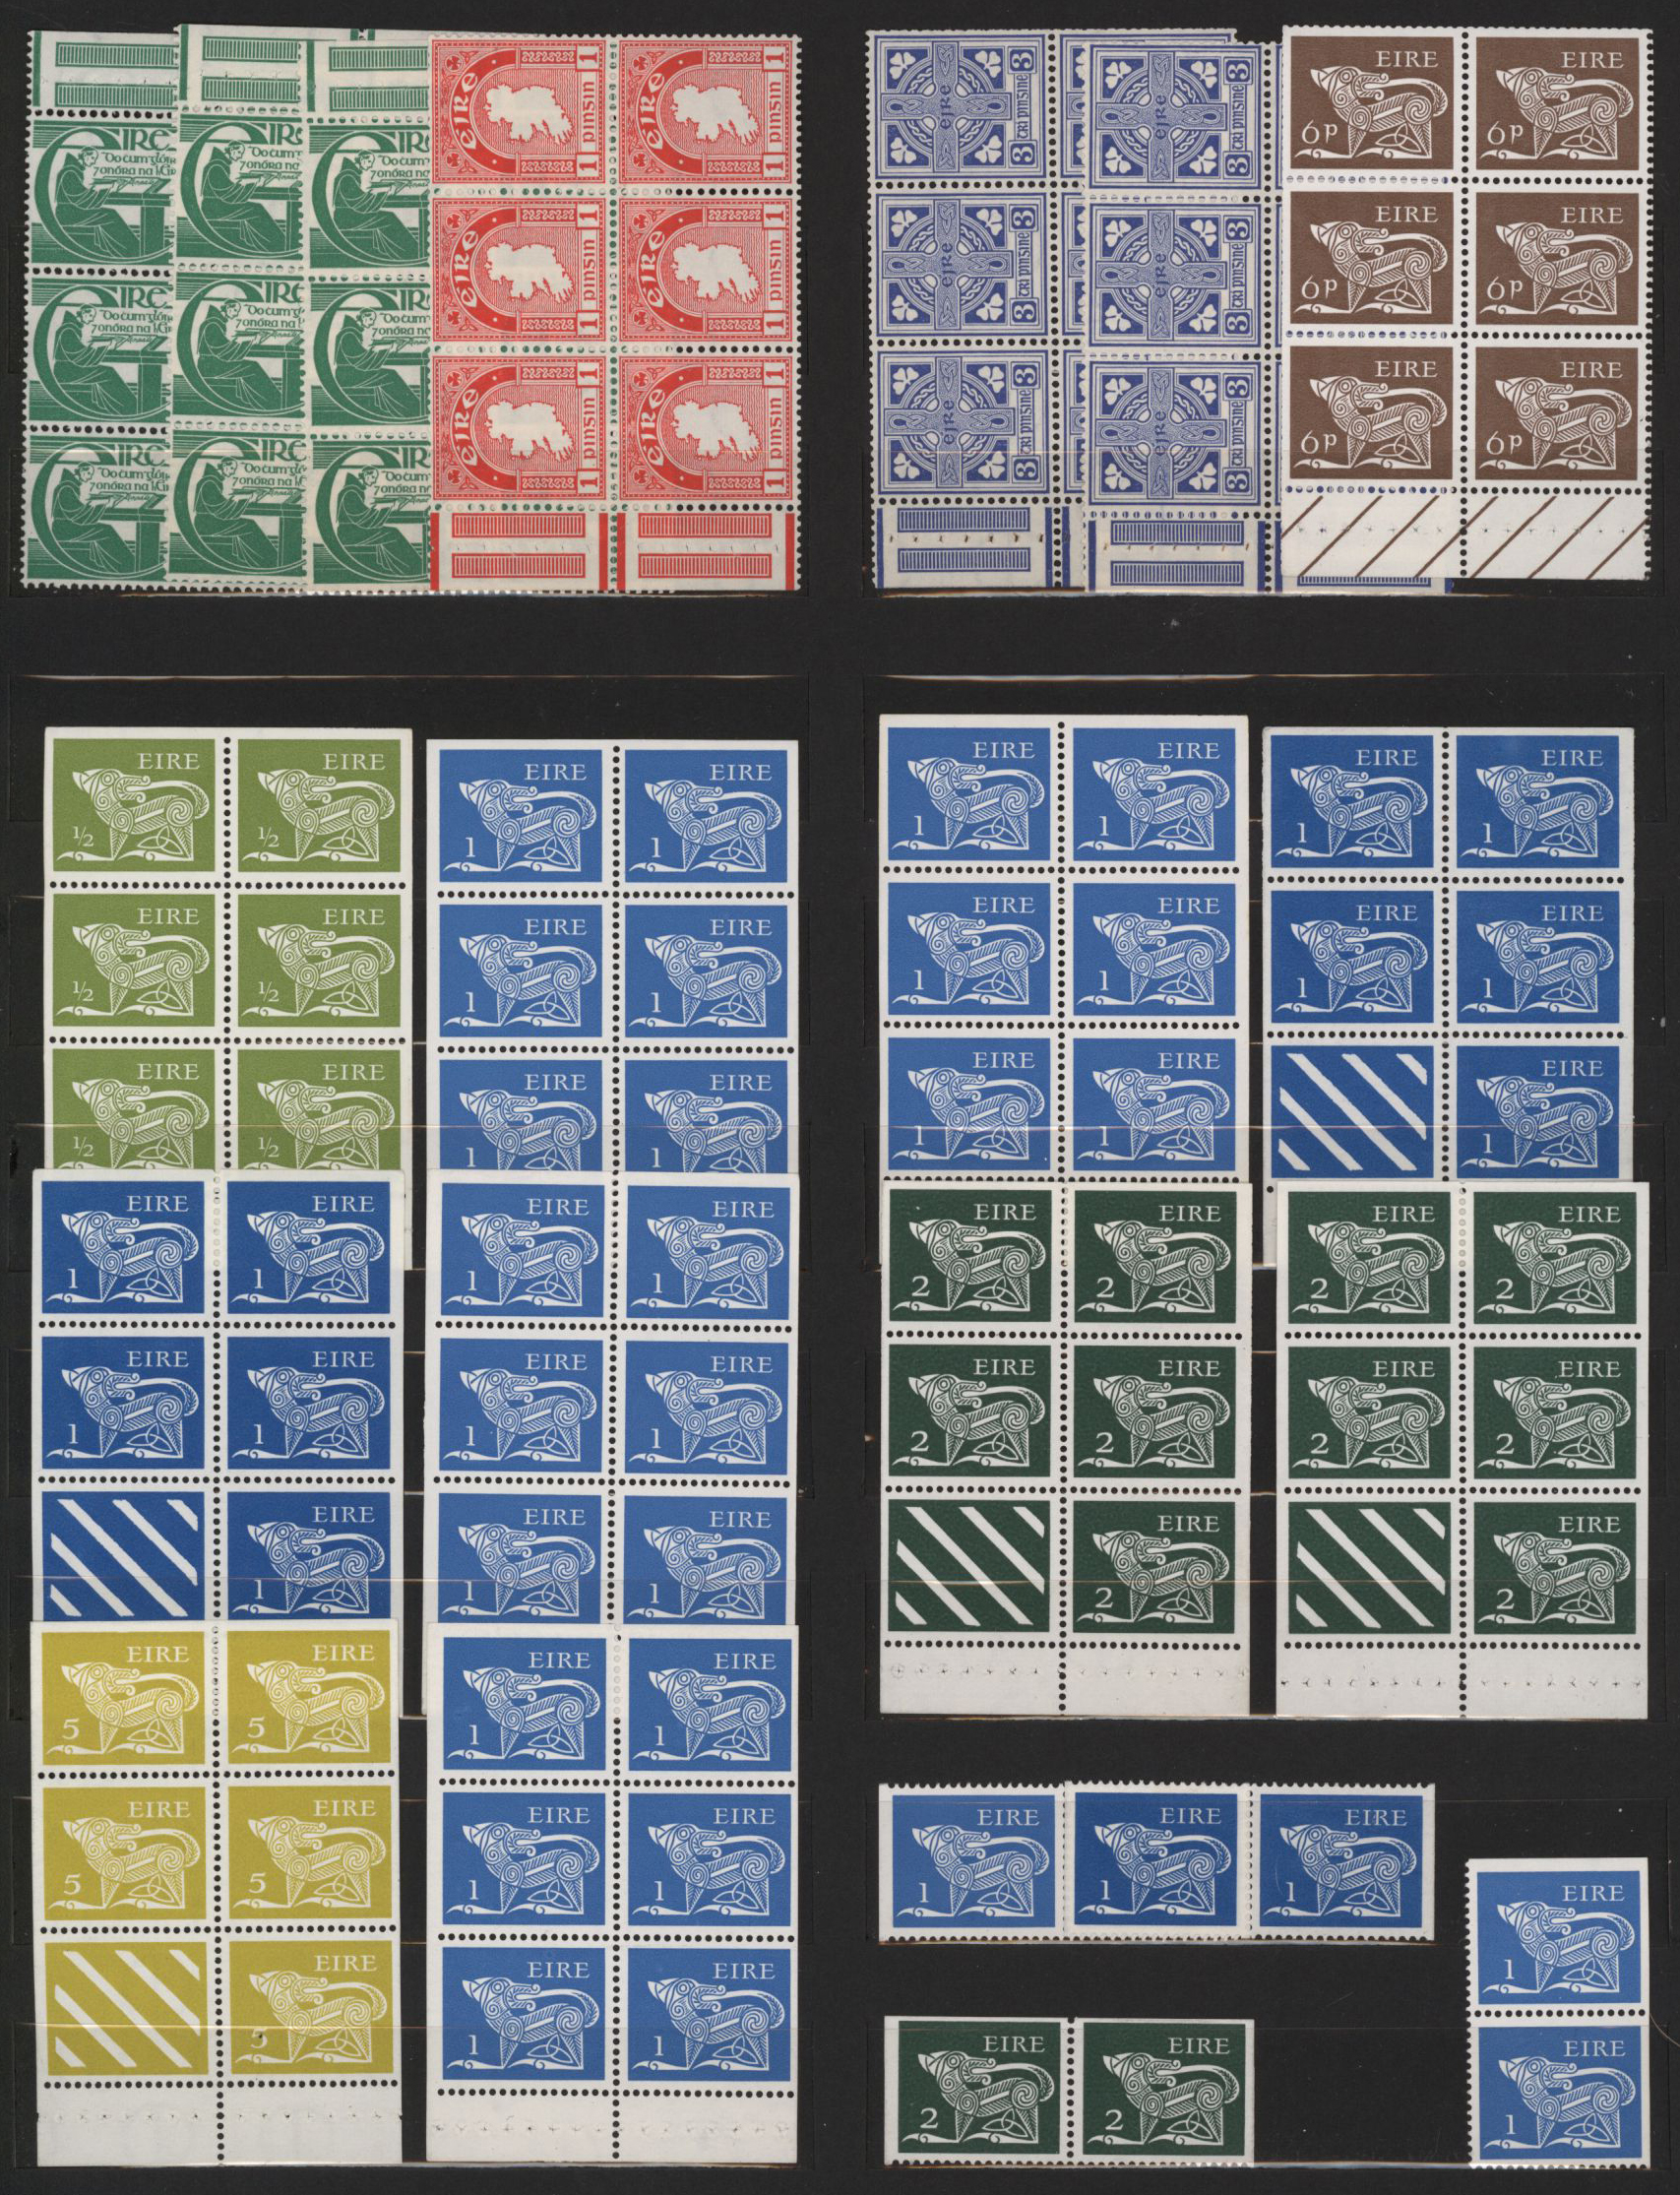 Lot 18527 - irland  -  Auktionshaus Christoph Gärtner GmbH & Co. KG 50th Auction Anniversary Auction - Day 5